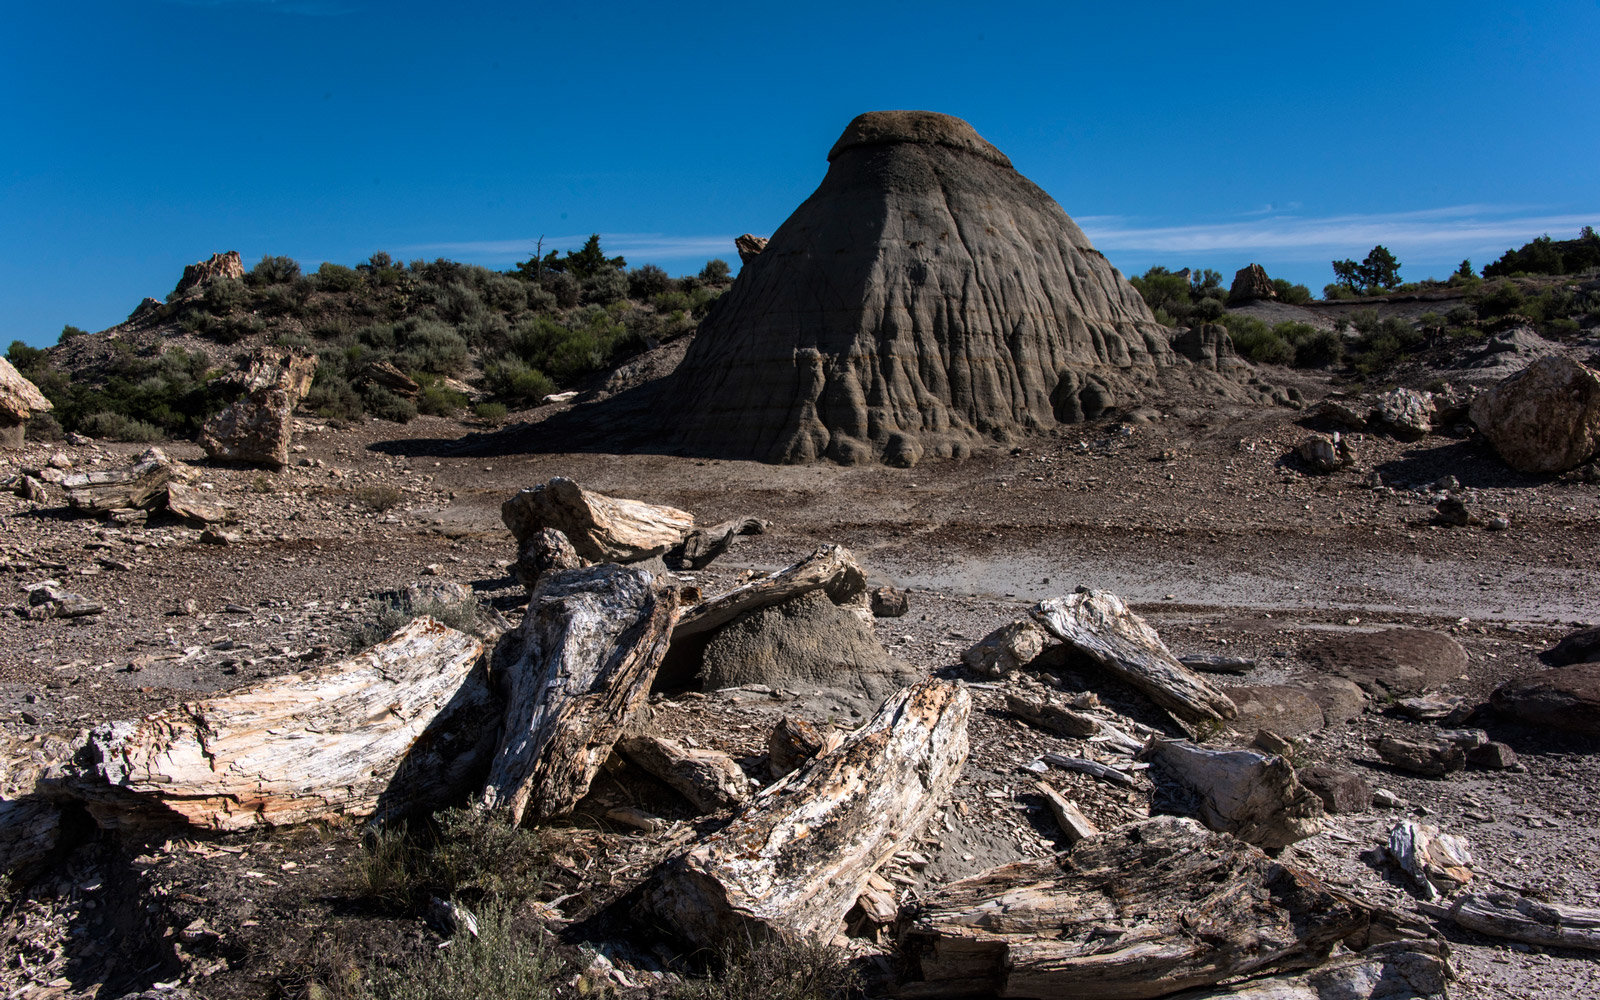 Petrified Wood in the outdoors